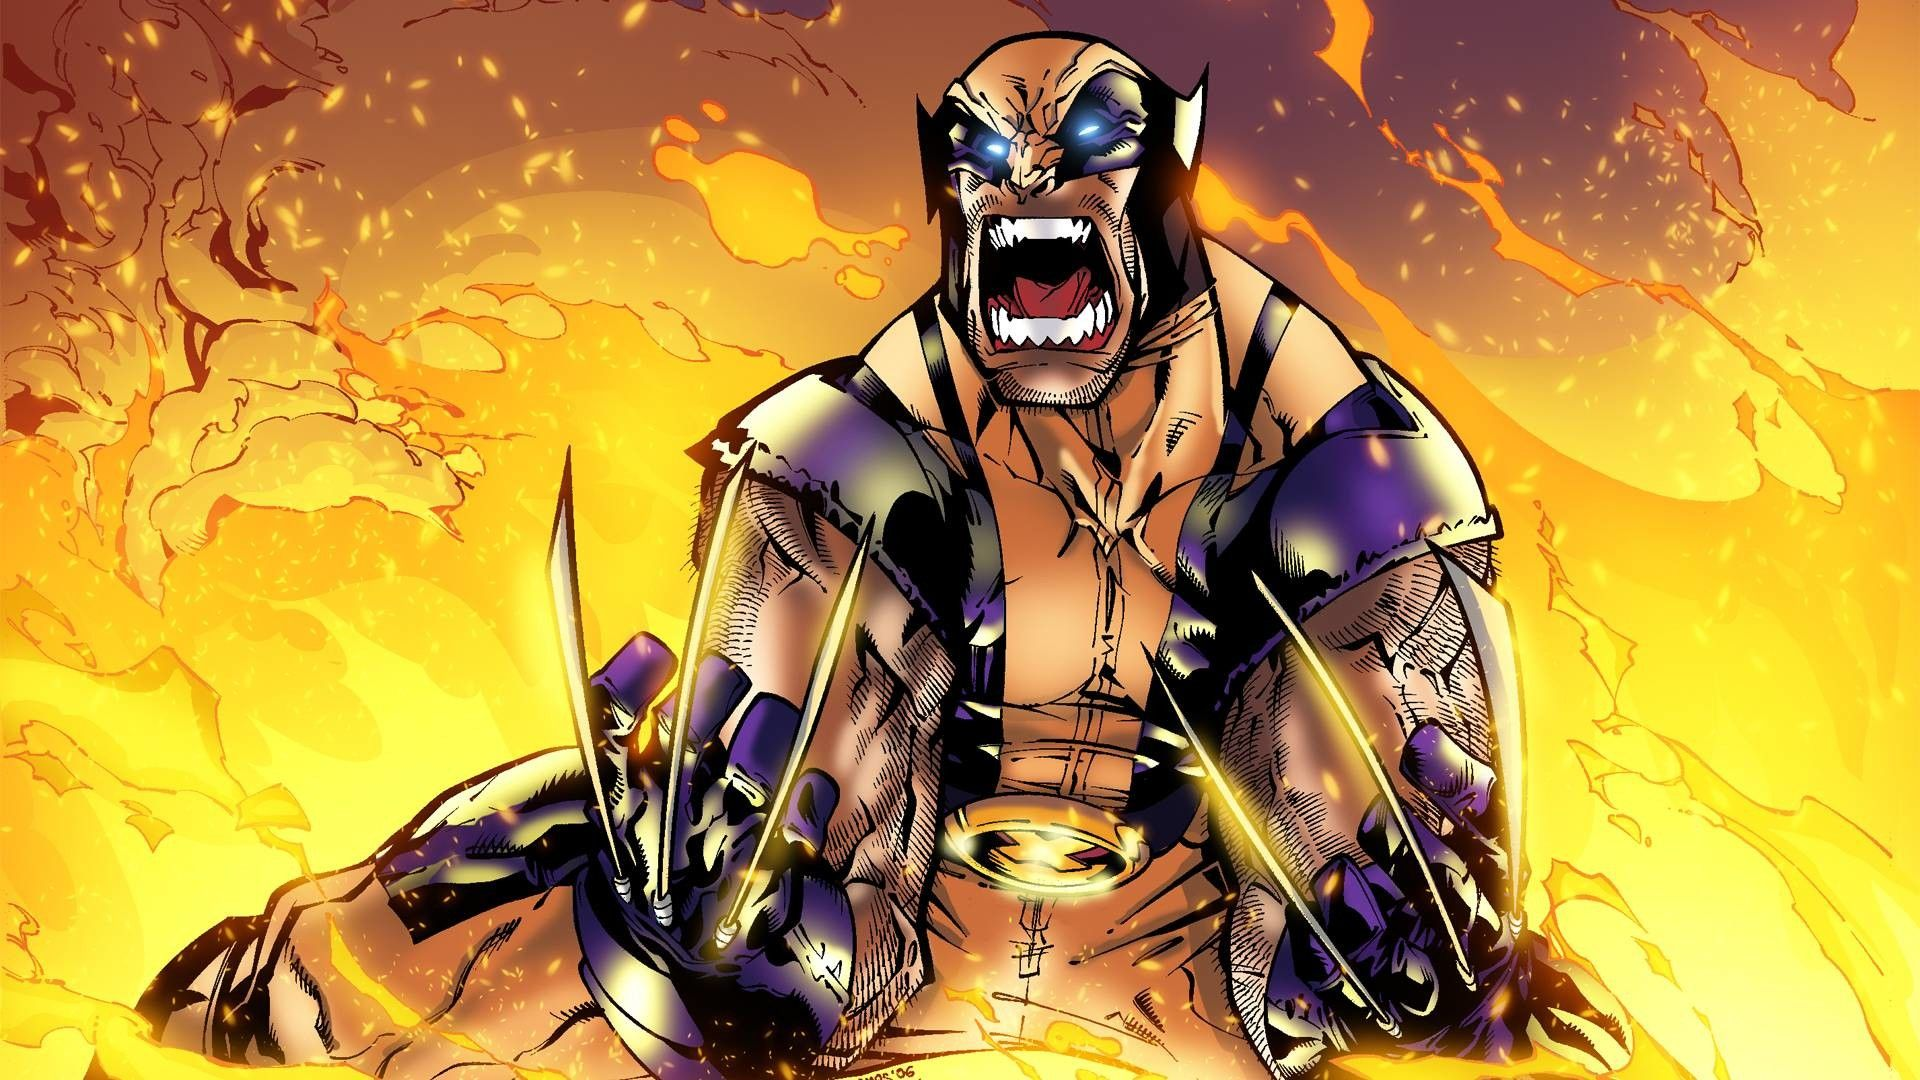 Wolverine Comic Wallpaper 1920x1080 Photos Marvel Wolverine